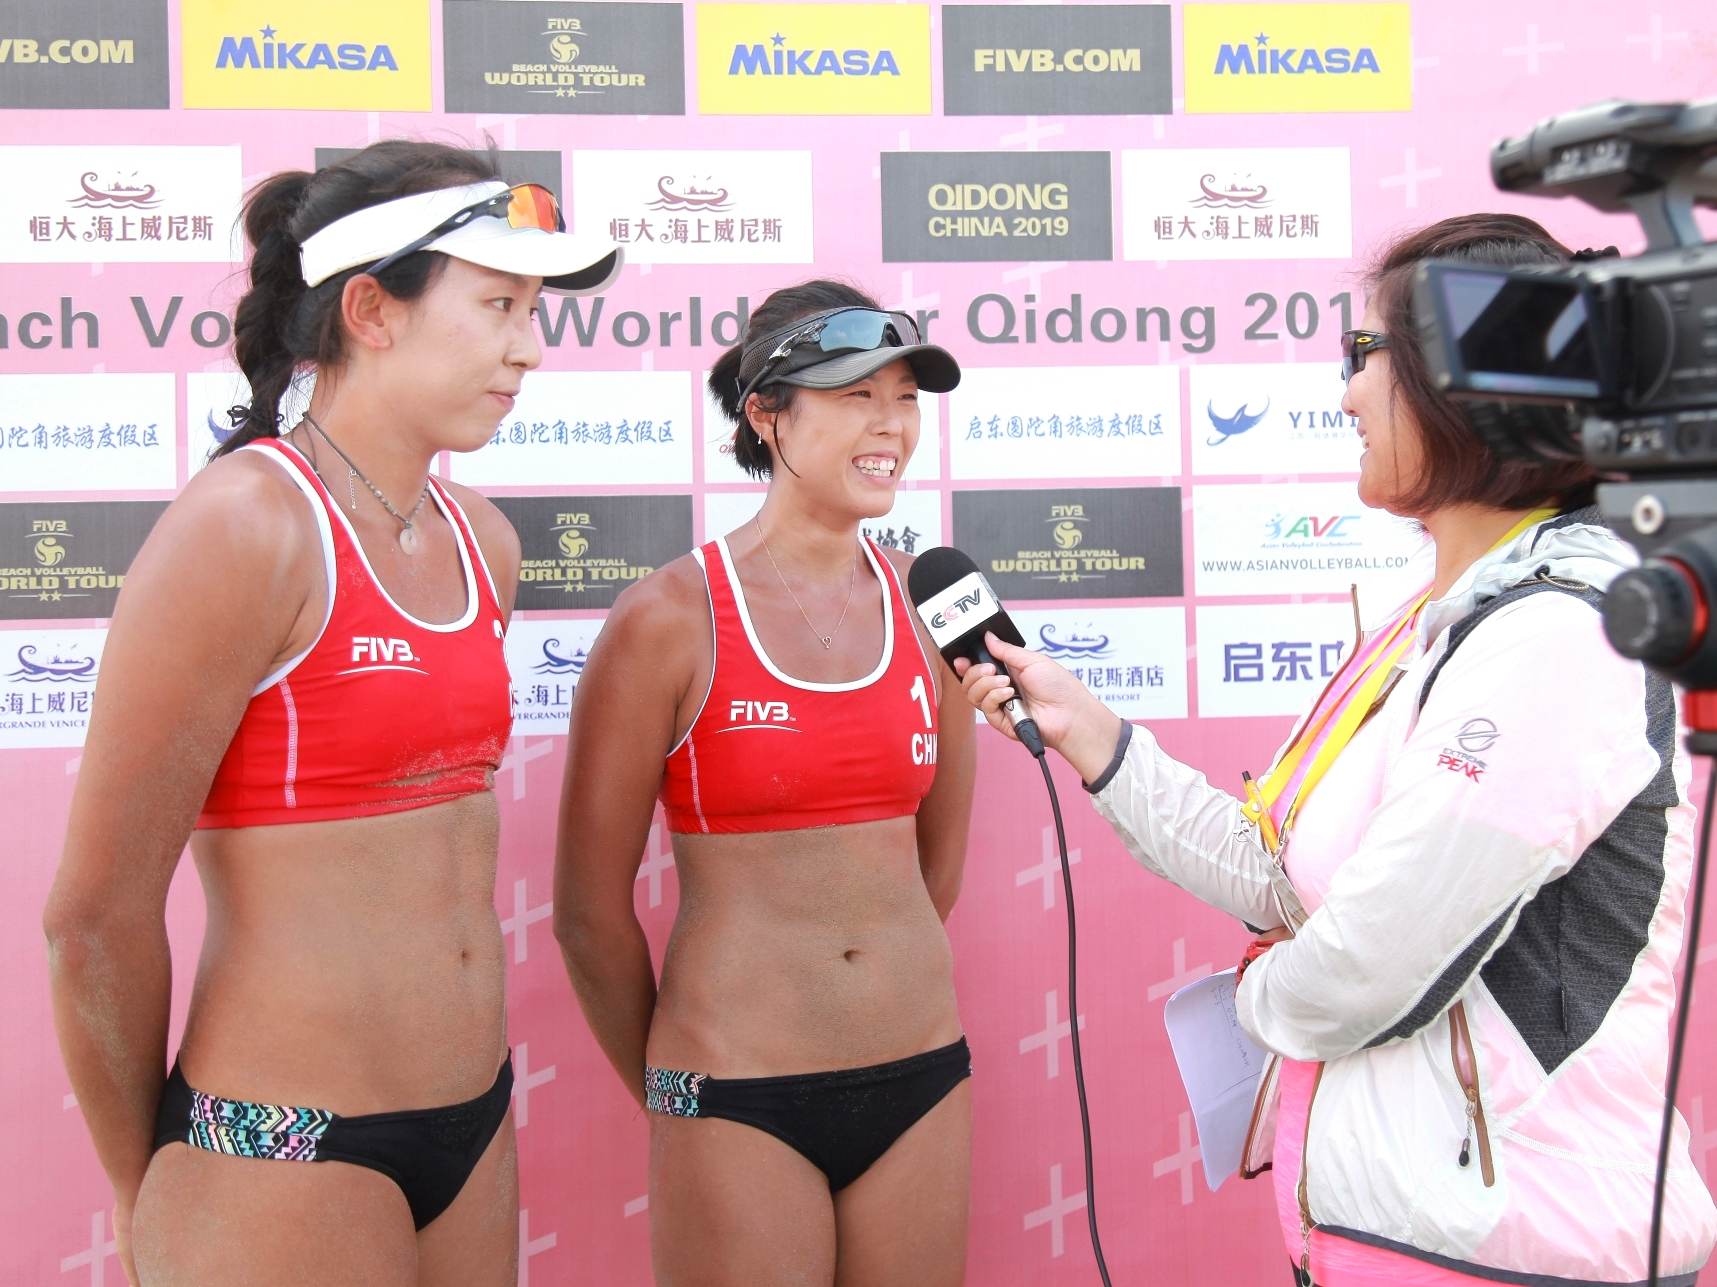 News - Busy week on tap for FIVB World Tour